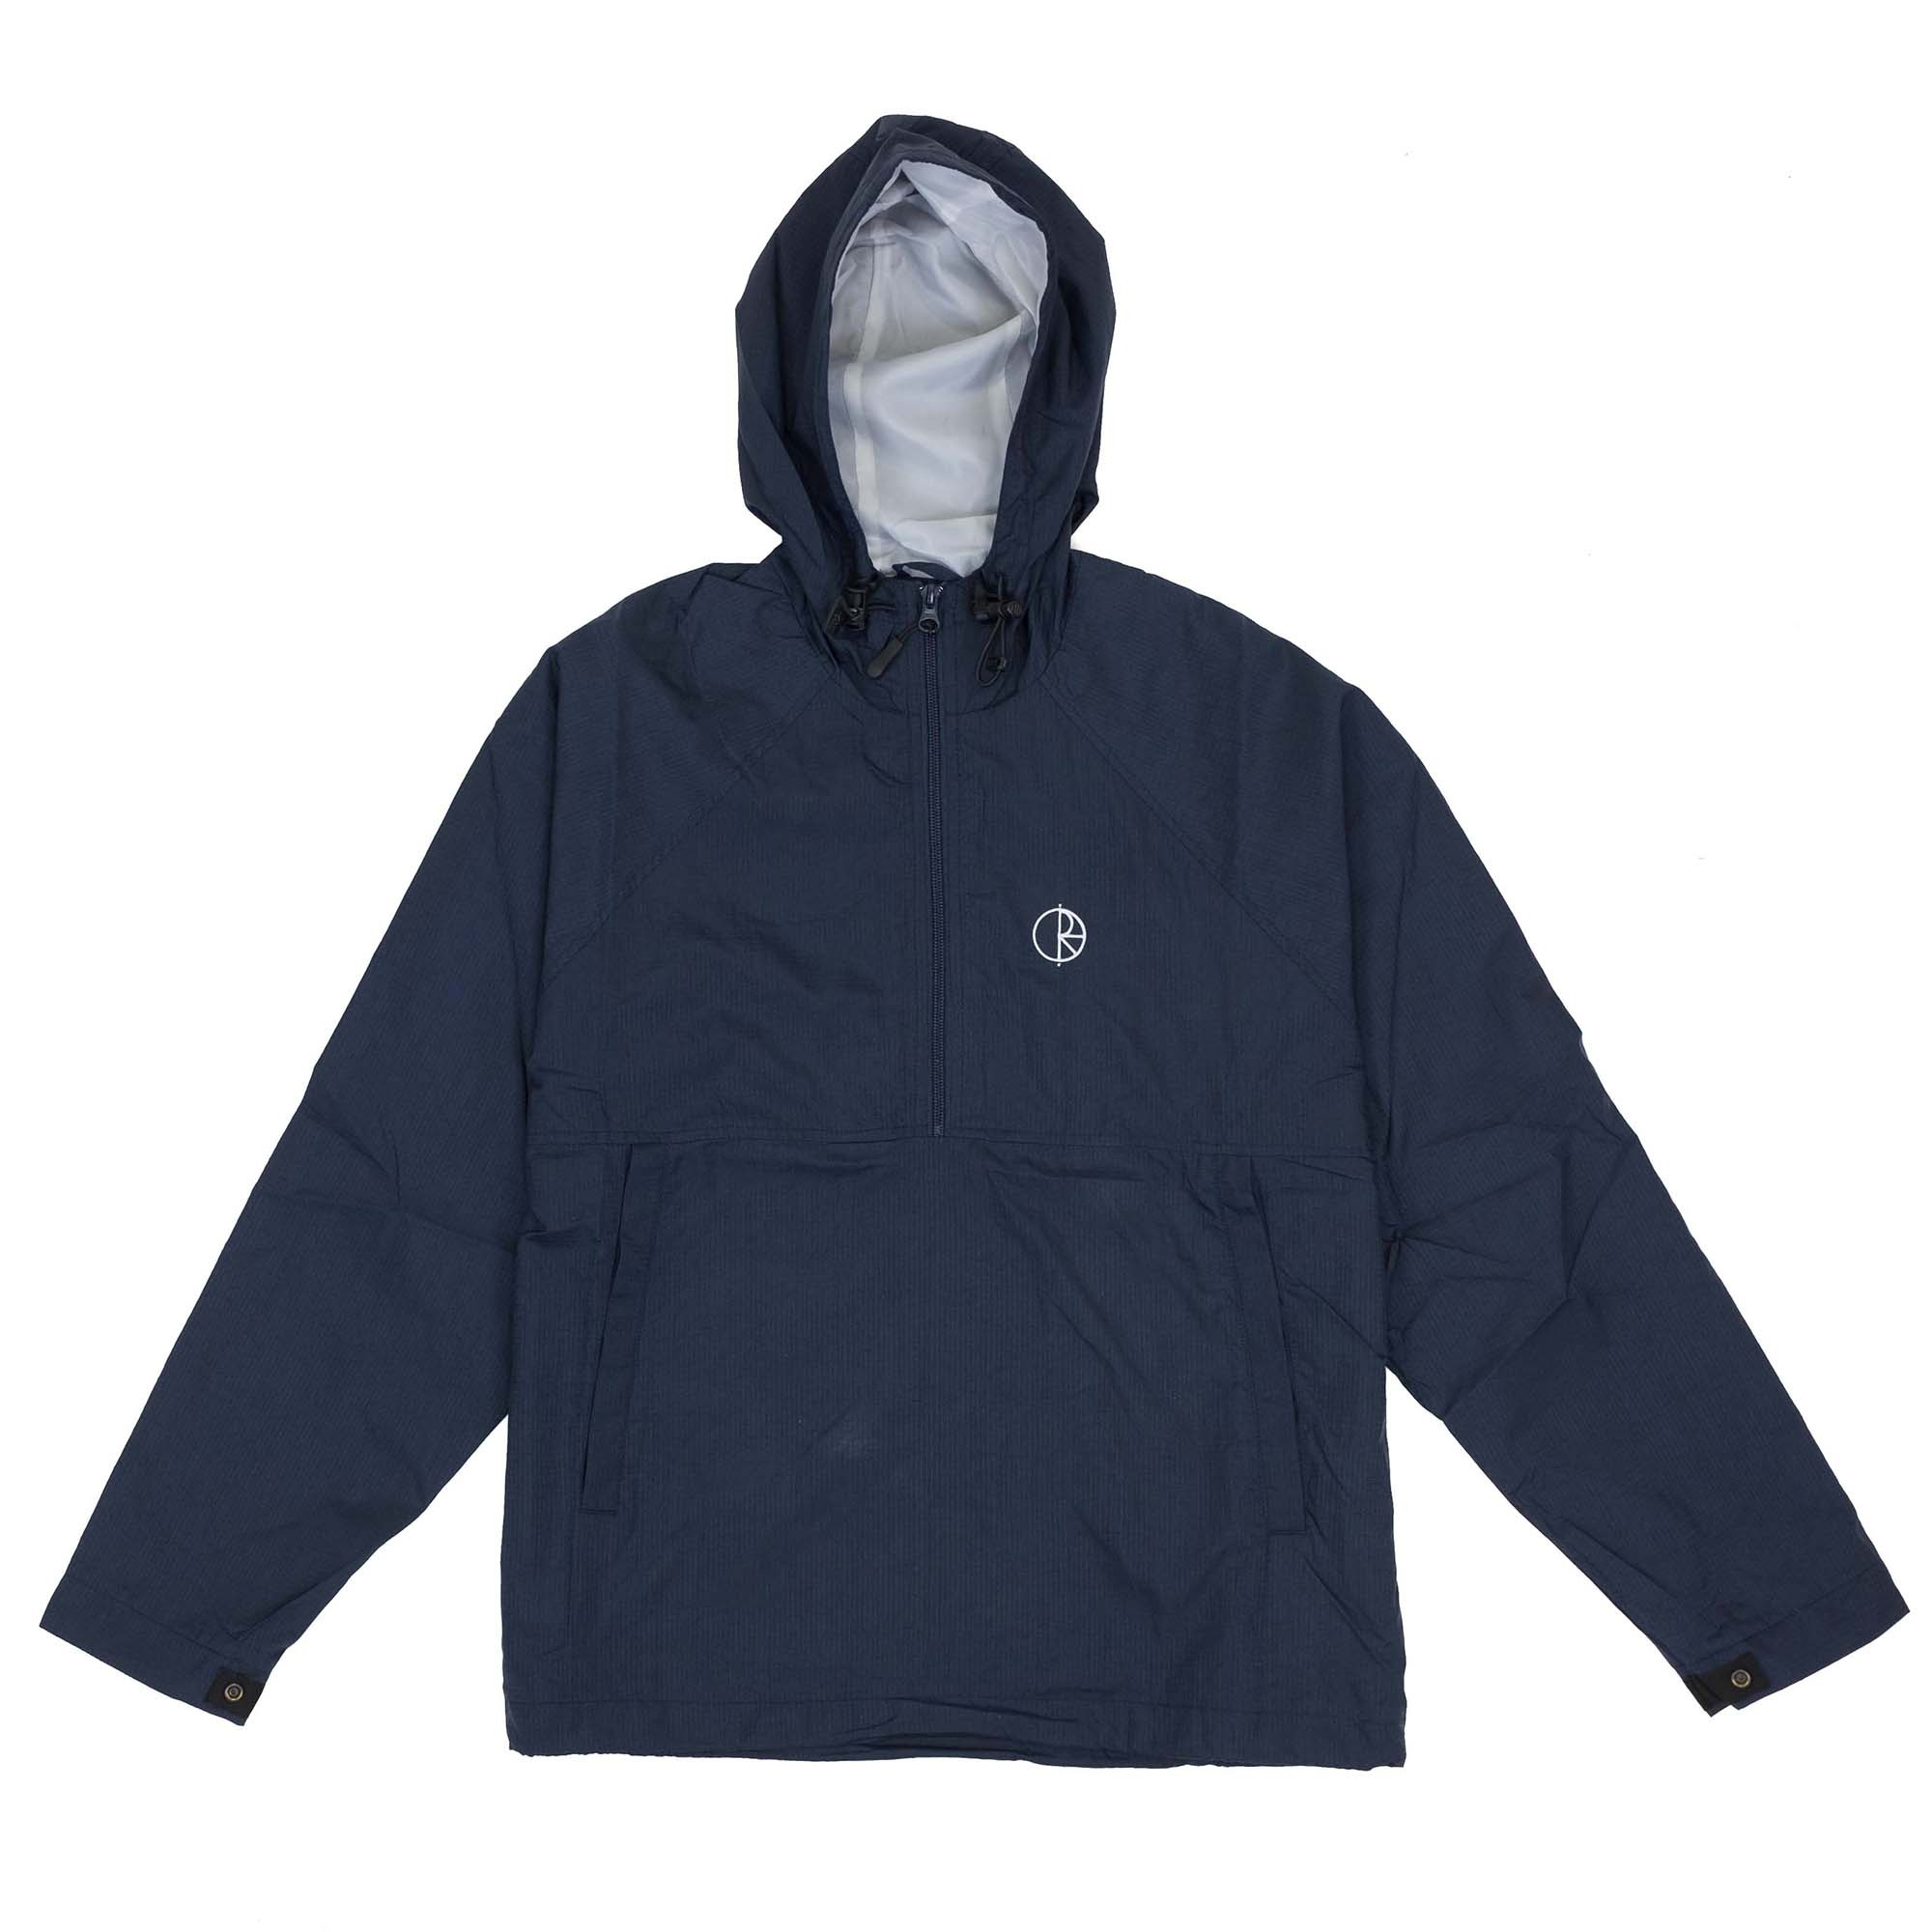 Polar Skate Co. Ripstop Anorak Jacket - Navy